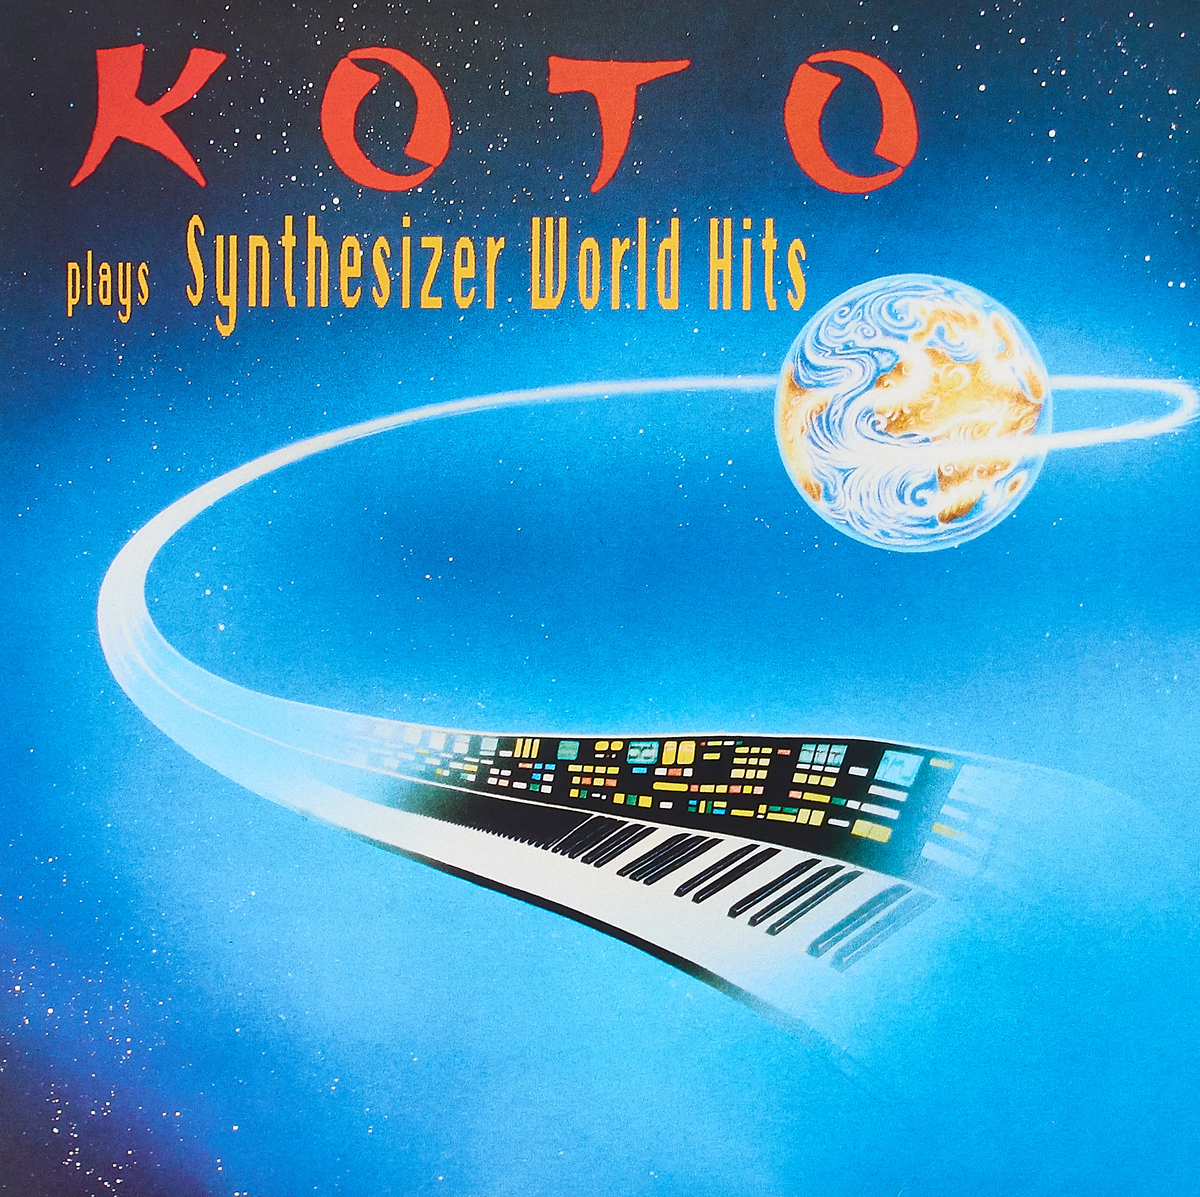 Koto Koto. Plays Synthesizer World Hits (LP) koto koto the 12 mixes